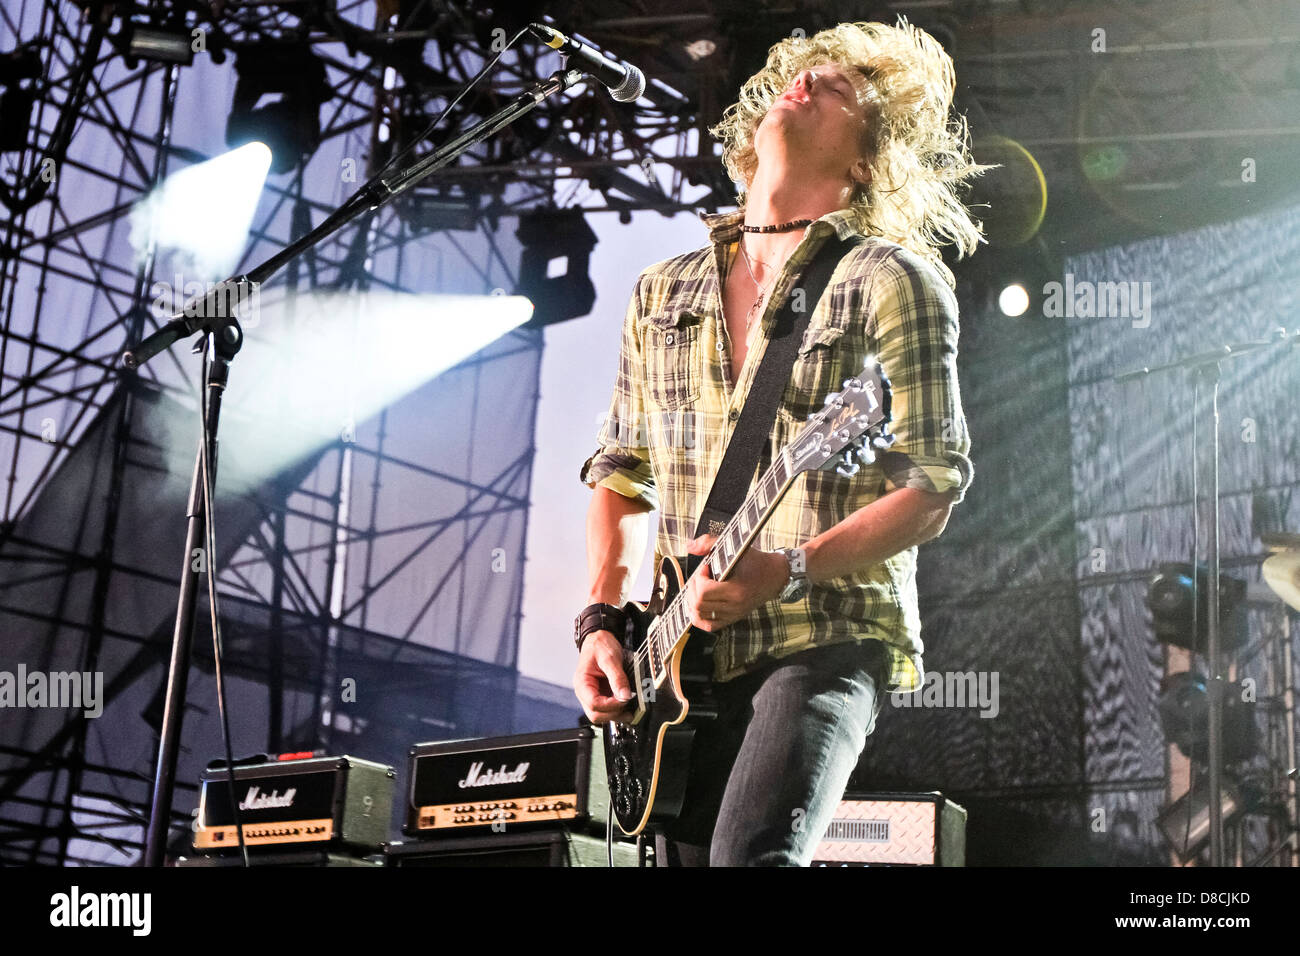 Lead singer of Fuel, Brett Scallions plays guitar at Musikfest. - Stock Image